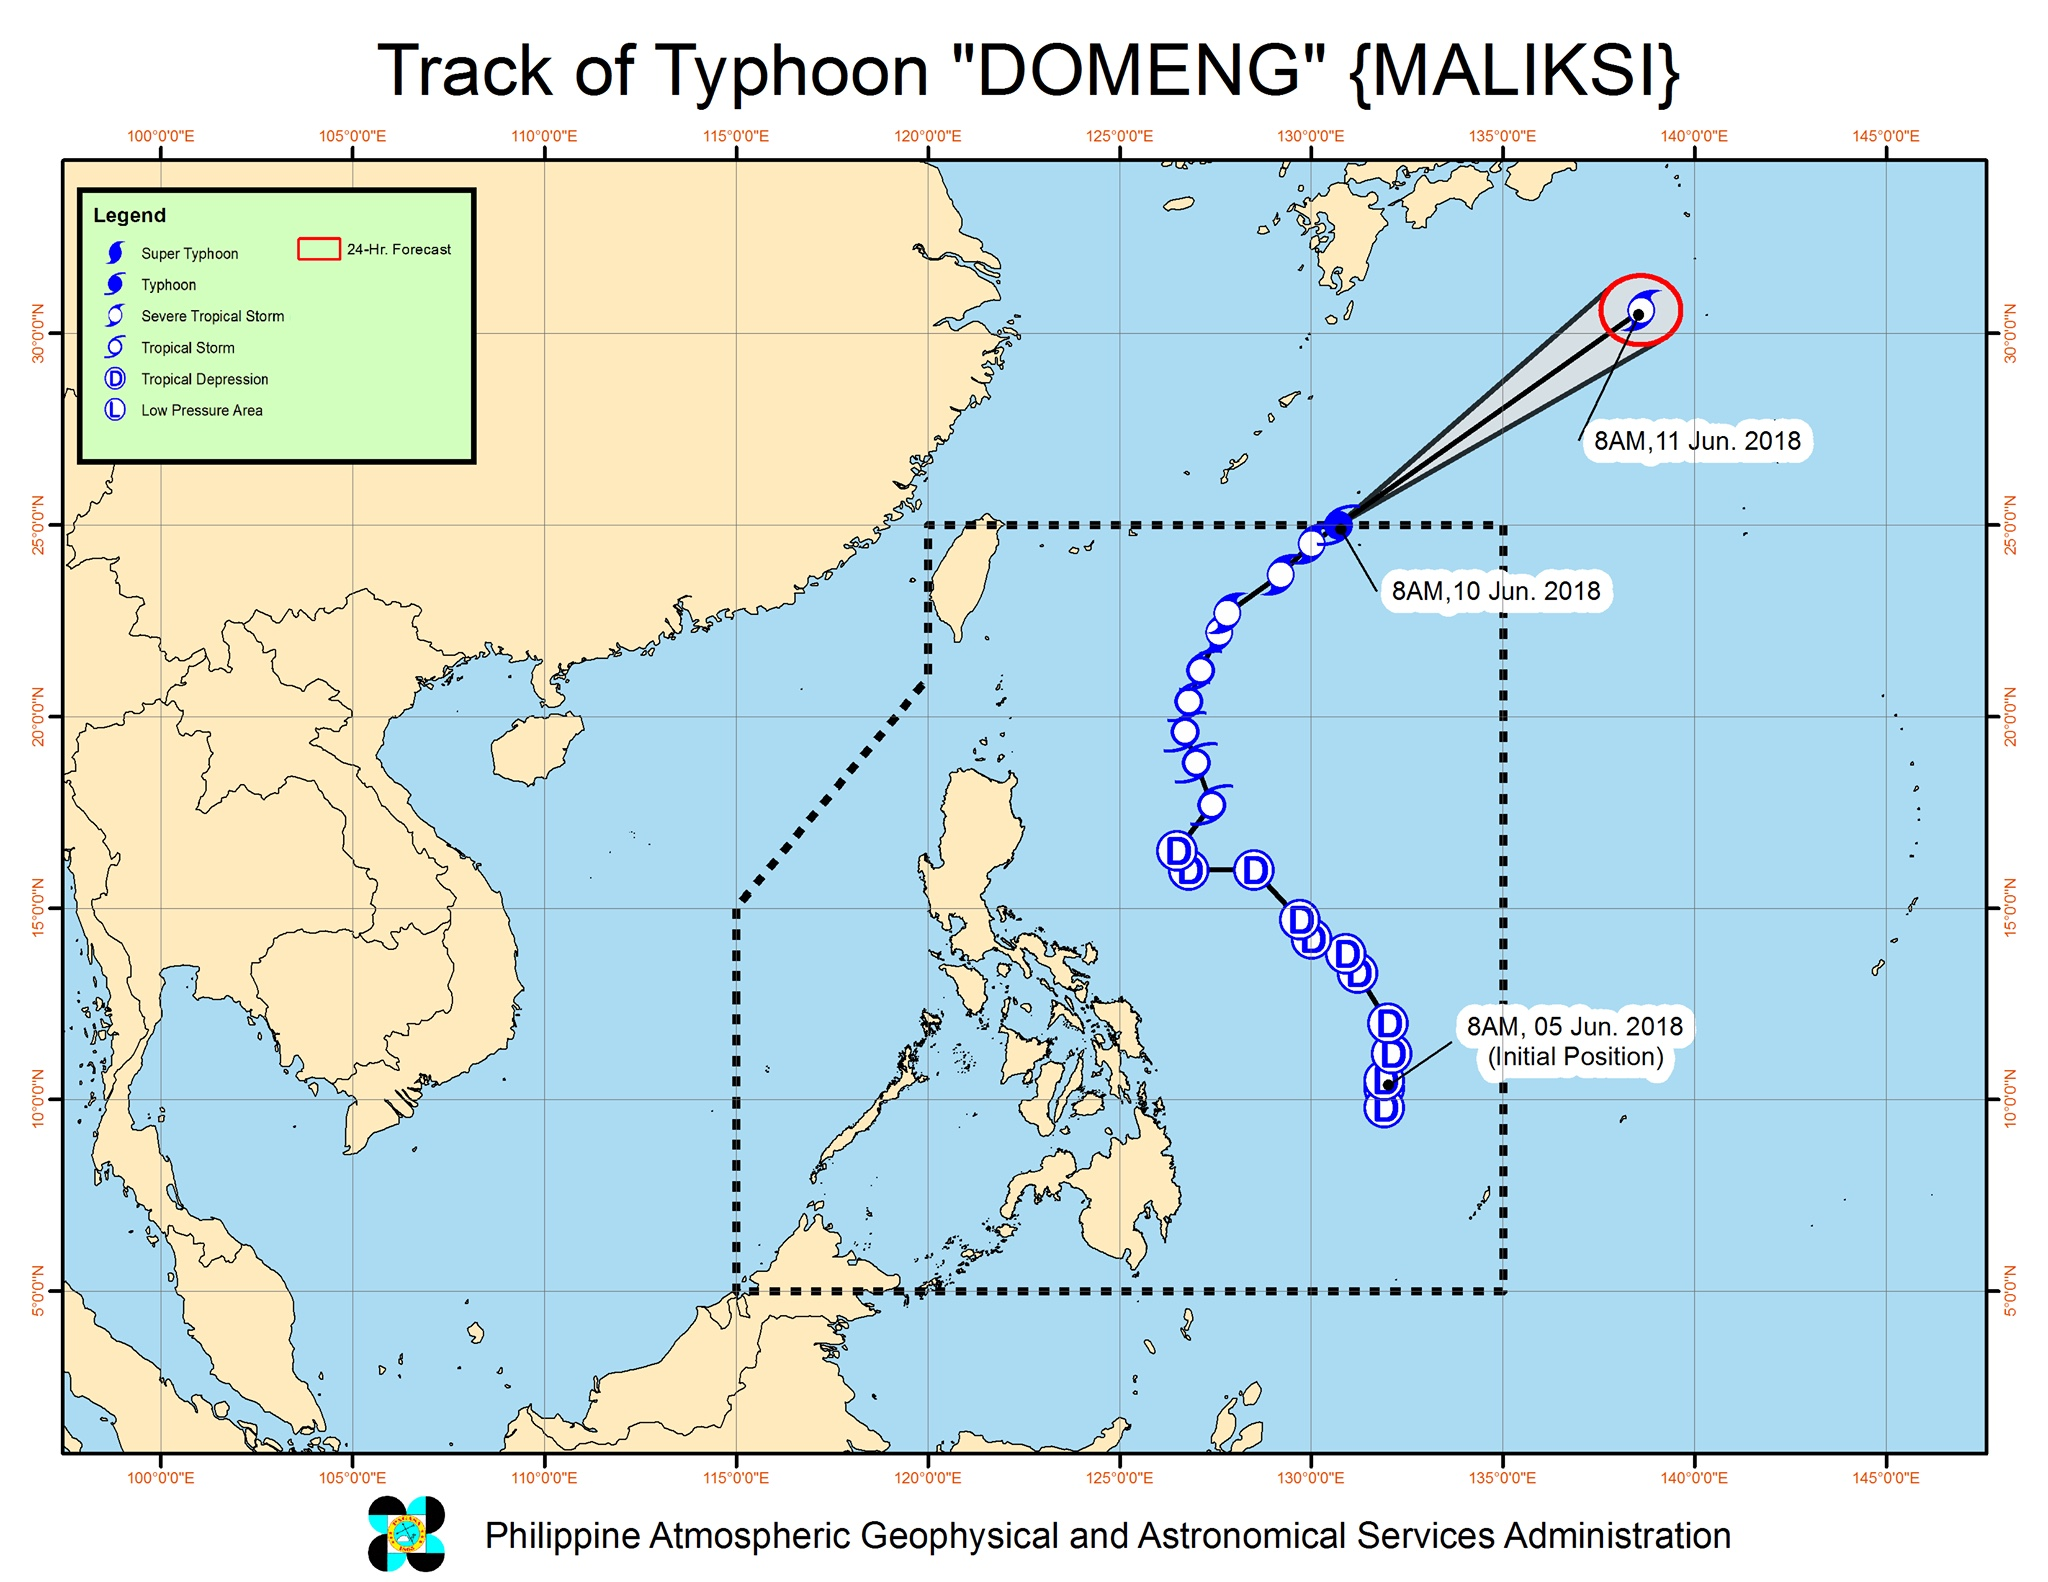 Forecast track of Typhoon Domeng (Maliksi) as of June 10, 2018, 9:30 am. Image courtesy of PAGASA